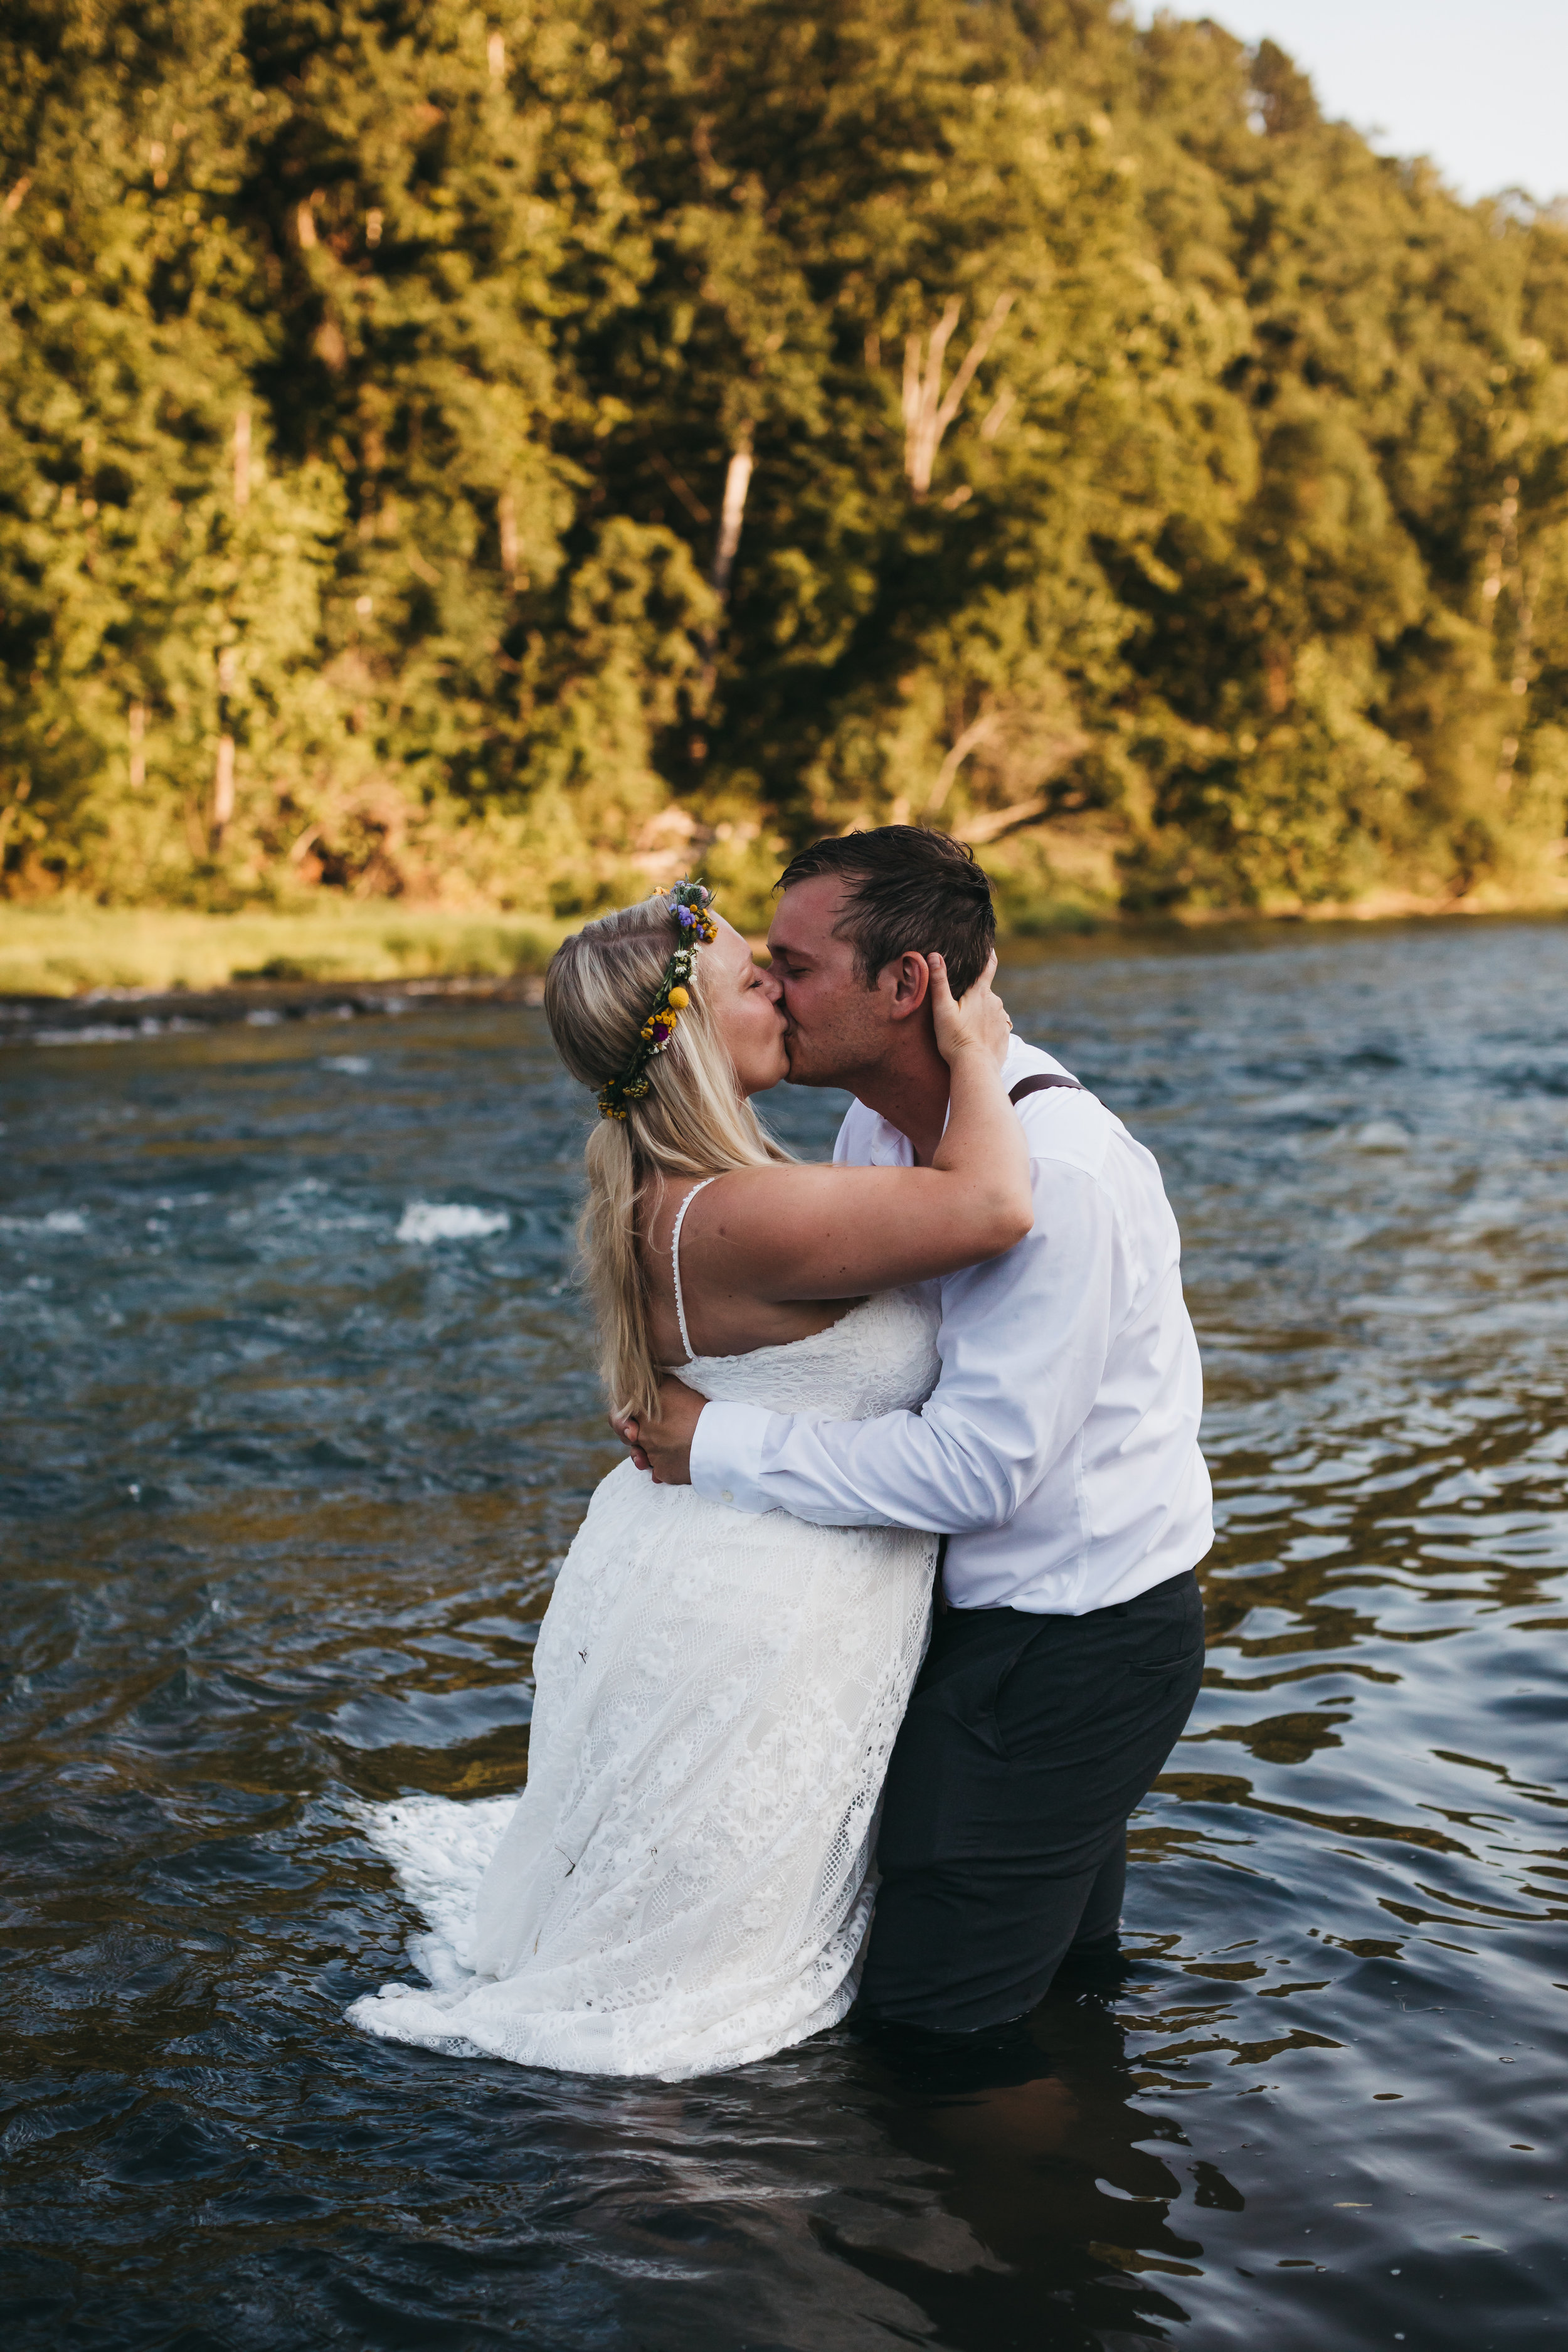 Bride and groom kiss while standing in a river